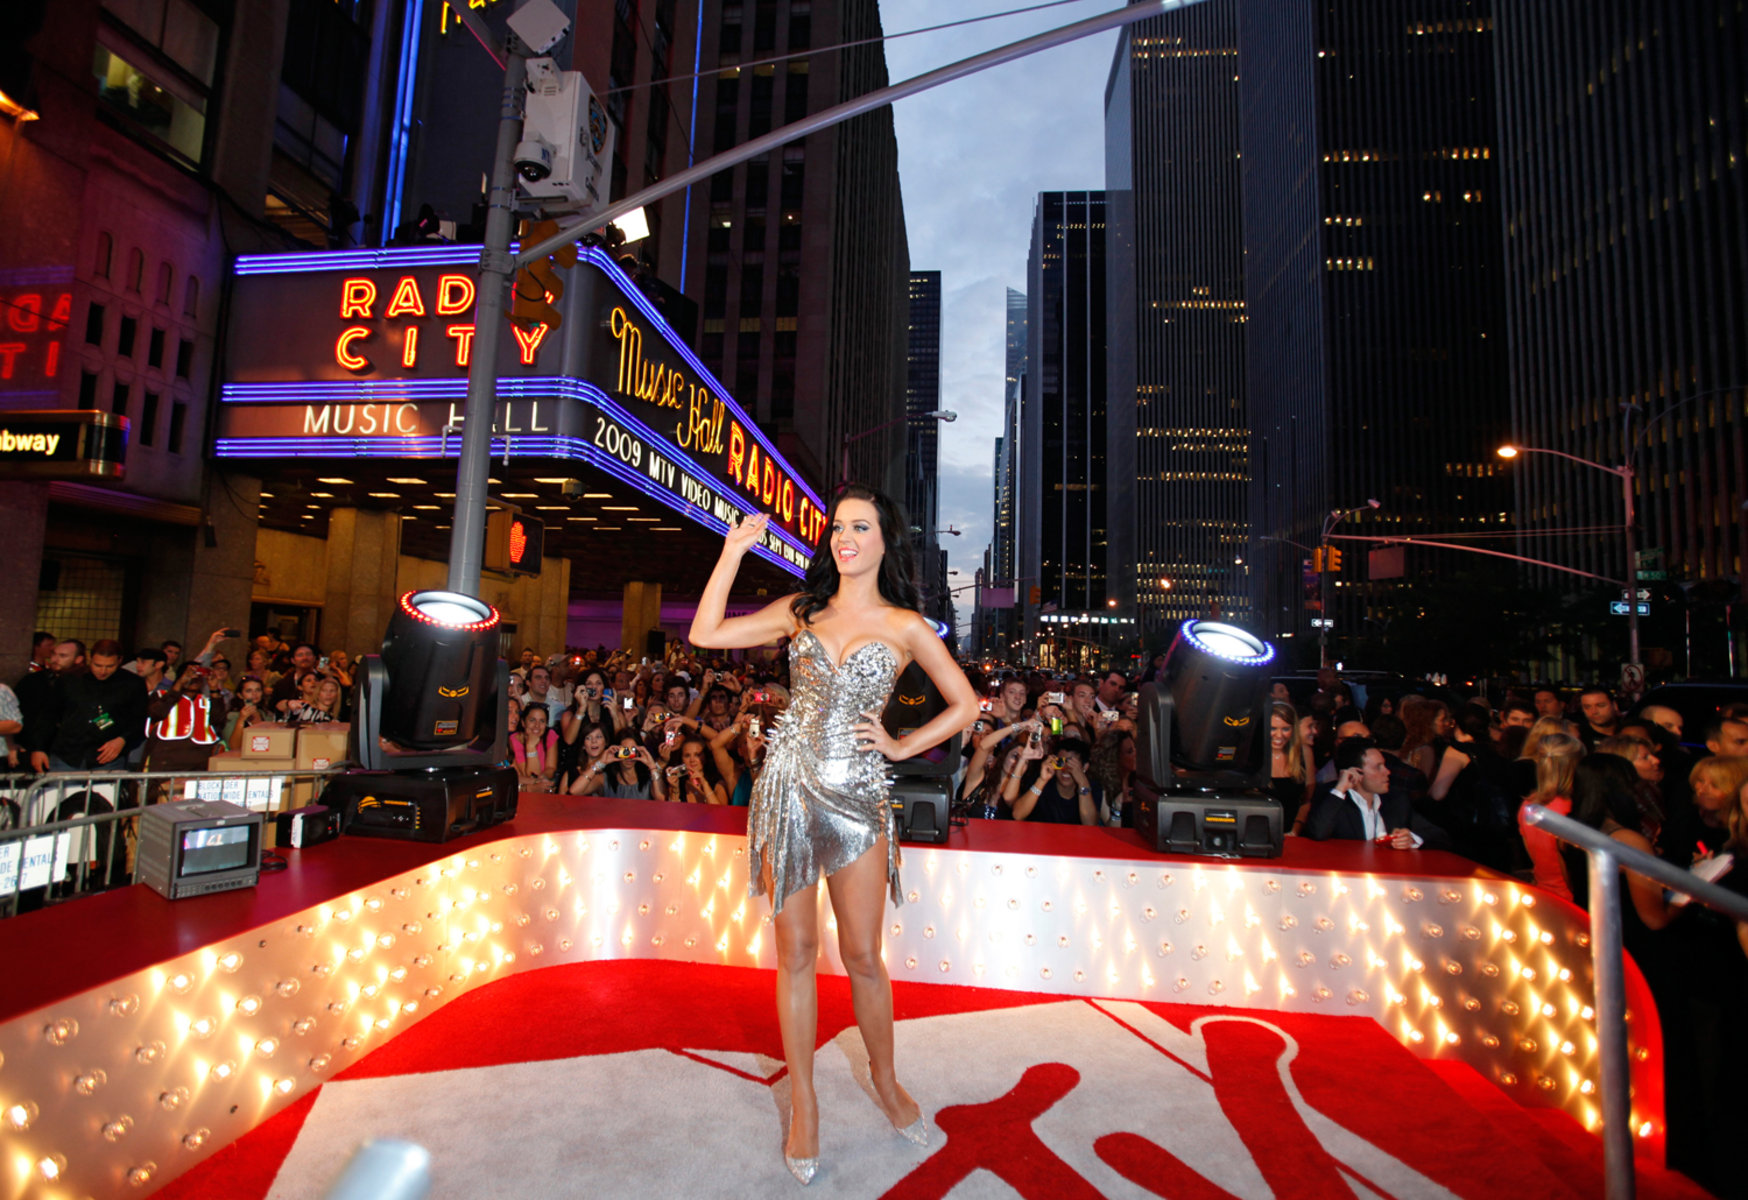 Image: Musician Katy Perry arrives at the 2009 MTV Video Music Awards in New York